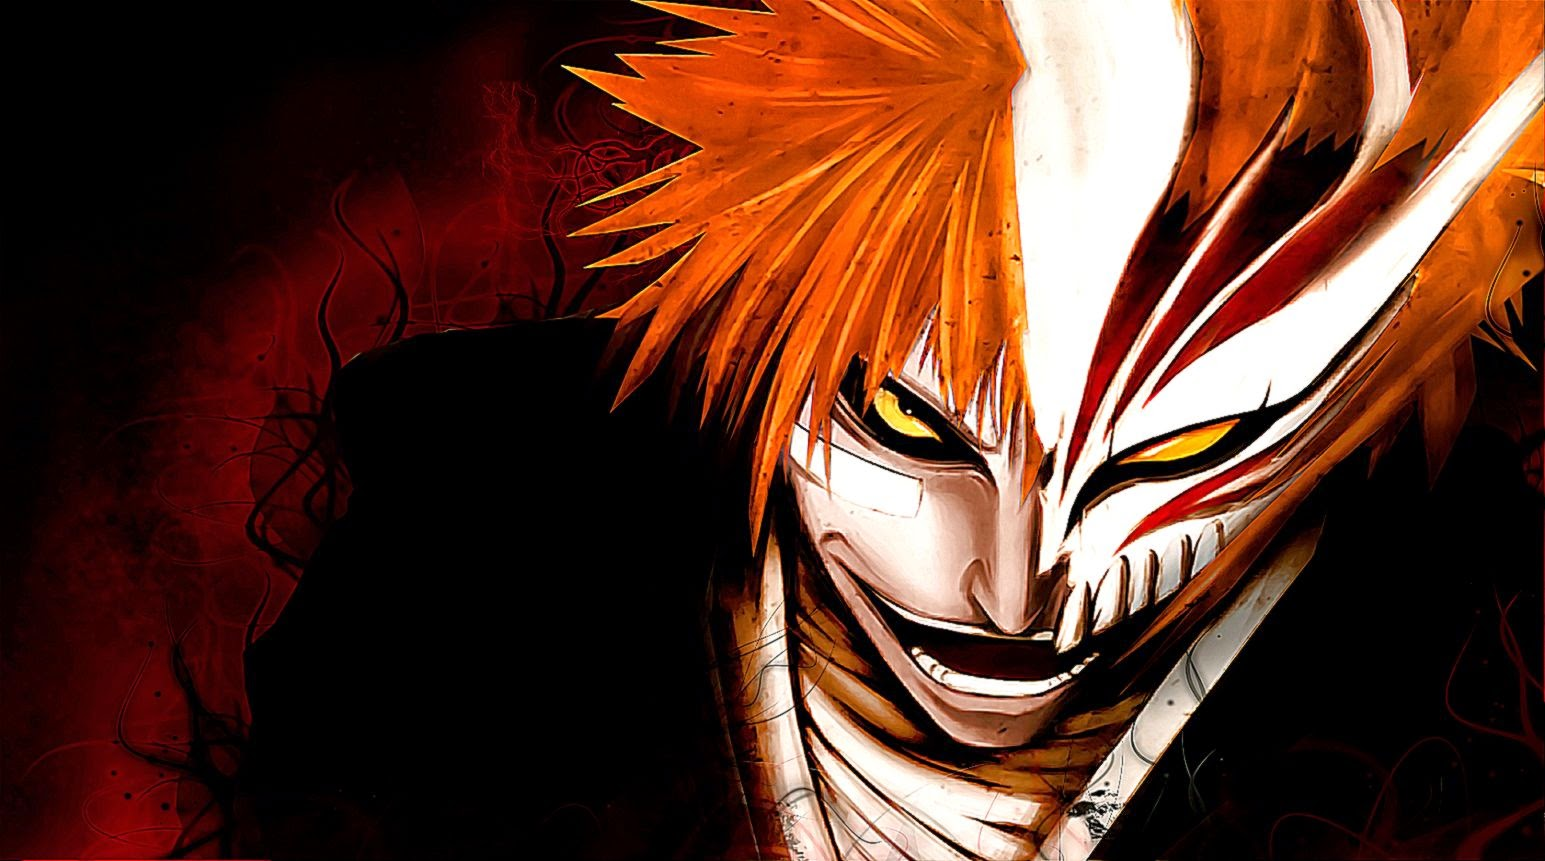 http://3.bp.blogspot.com/-c-pwp83LElY/VO8mk4ScZoI/AAAAAAAAC9I/9KOsIOOyFvE/s1600/bleach-ichigo-hollow-wallpaper-hd-image-anime.jpg Ichigo Hollow Wallpaper